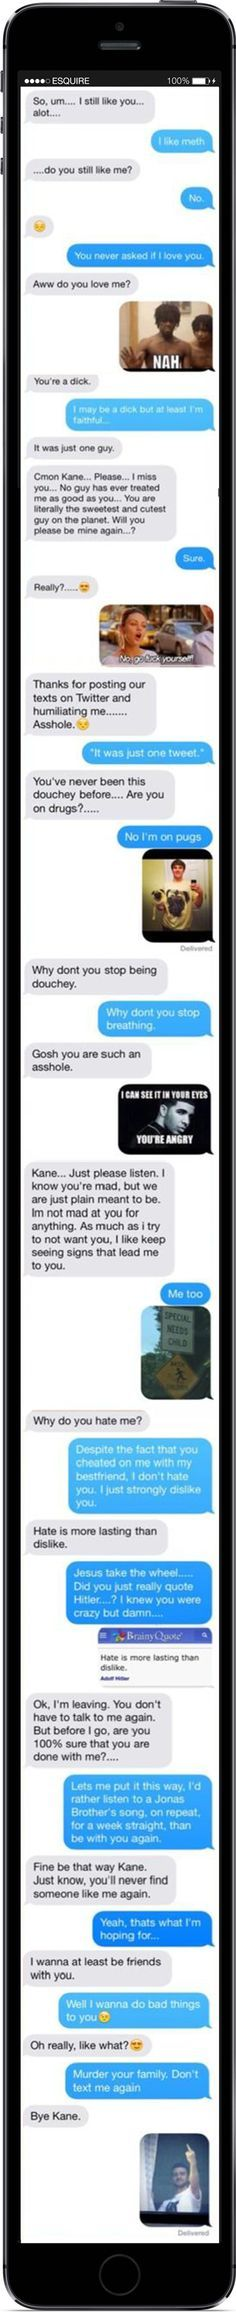 The Man Who Broke Up With His Cheating Girlfriend via Memes